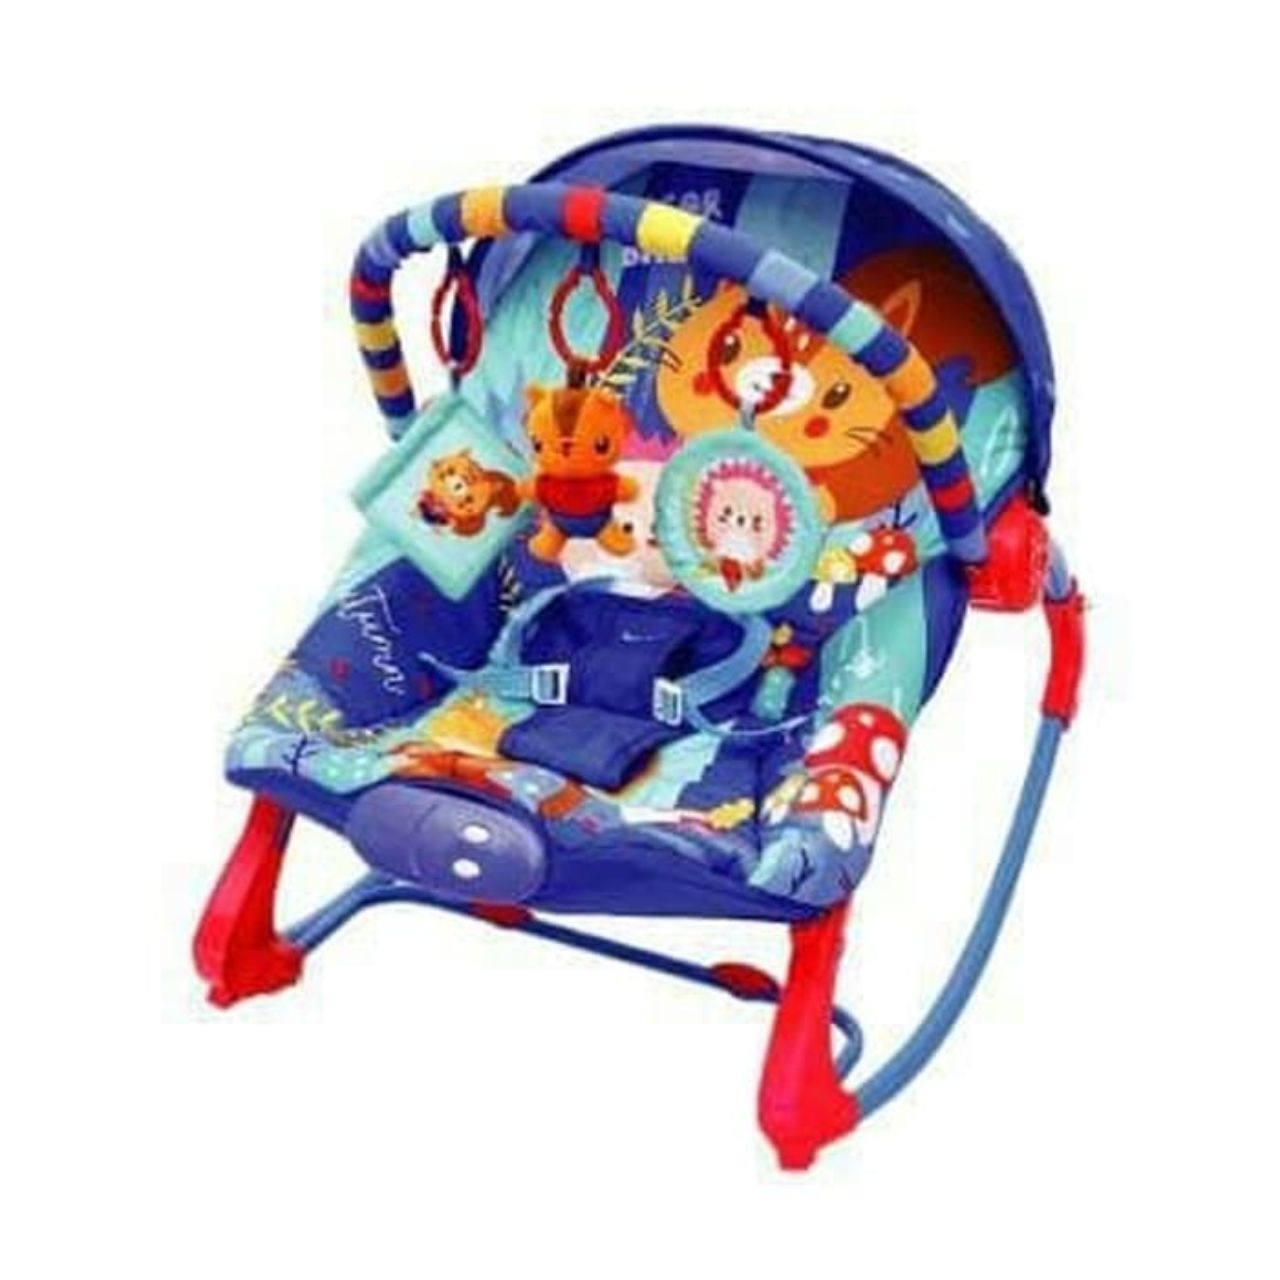 Premium Baby Bouncer New 10 in 1 type Coco n Friend0